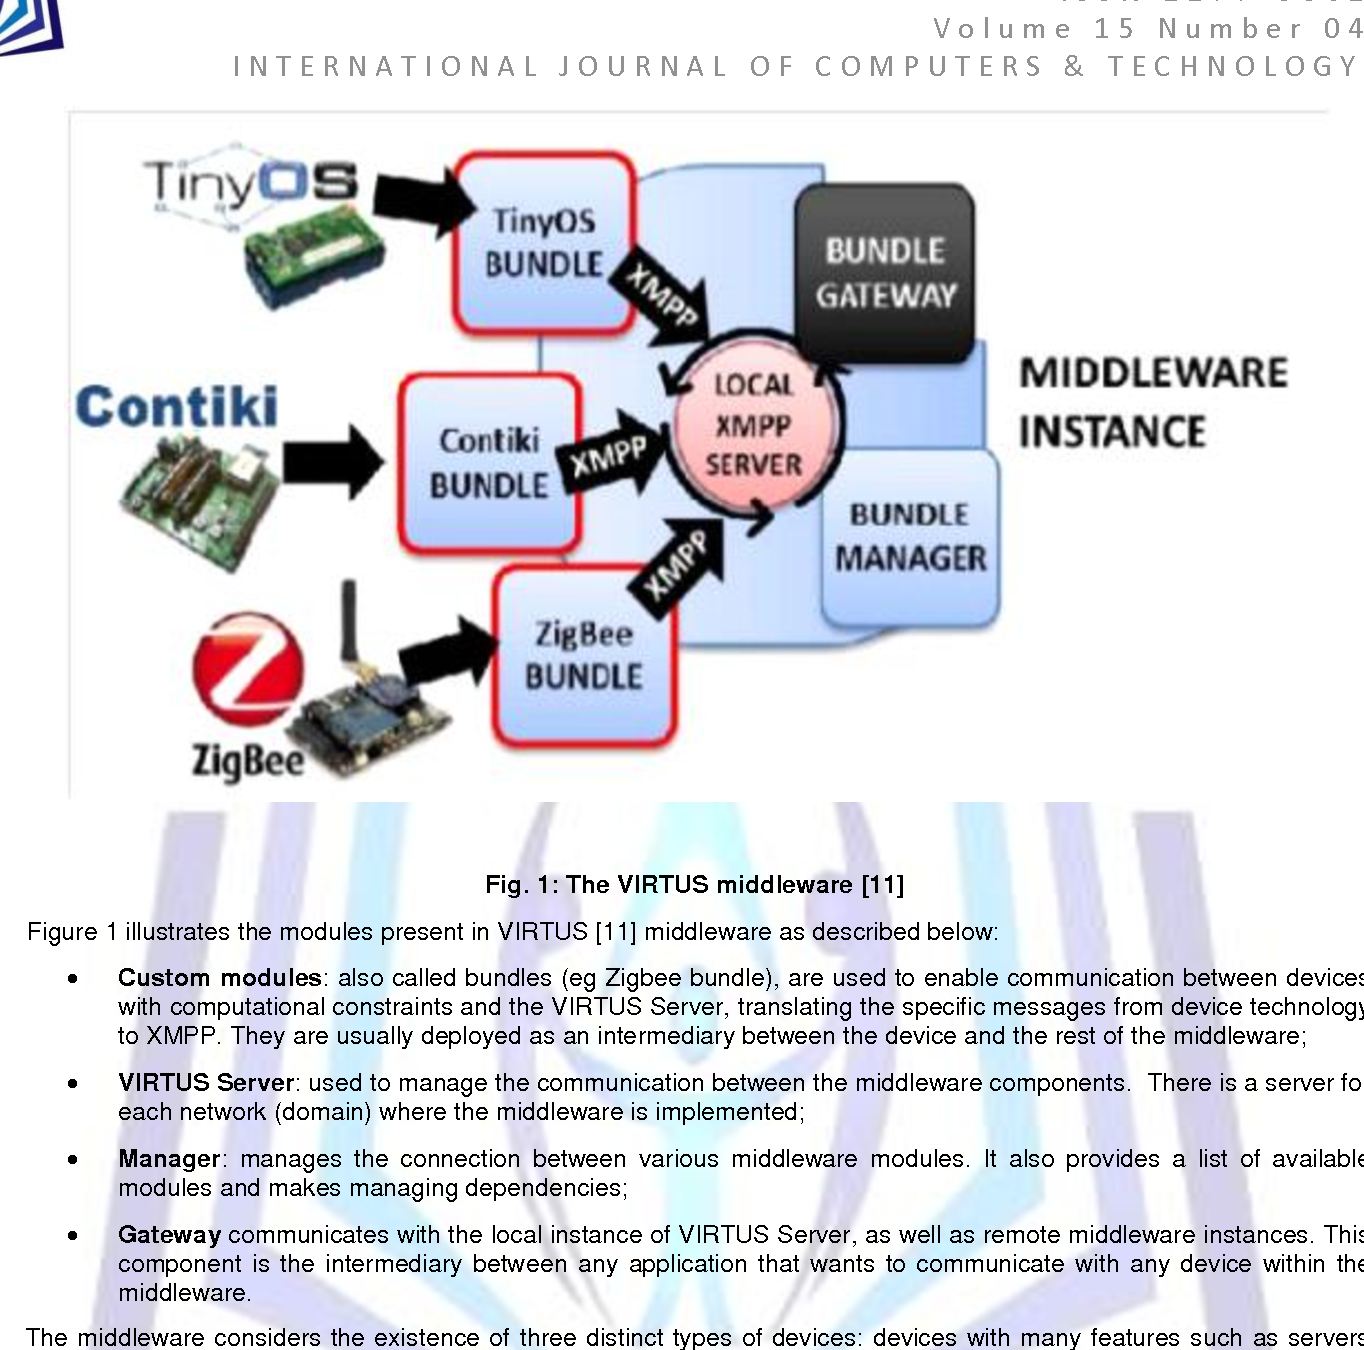 Fig. 1: The VIRTUS middleware [11]